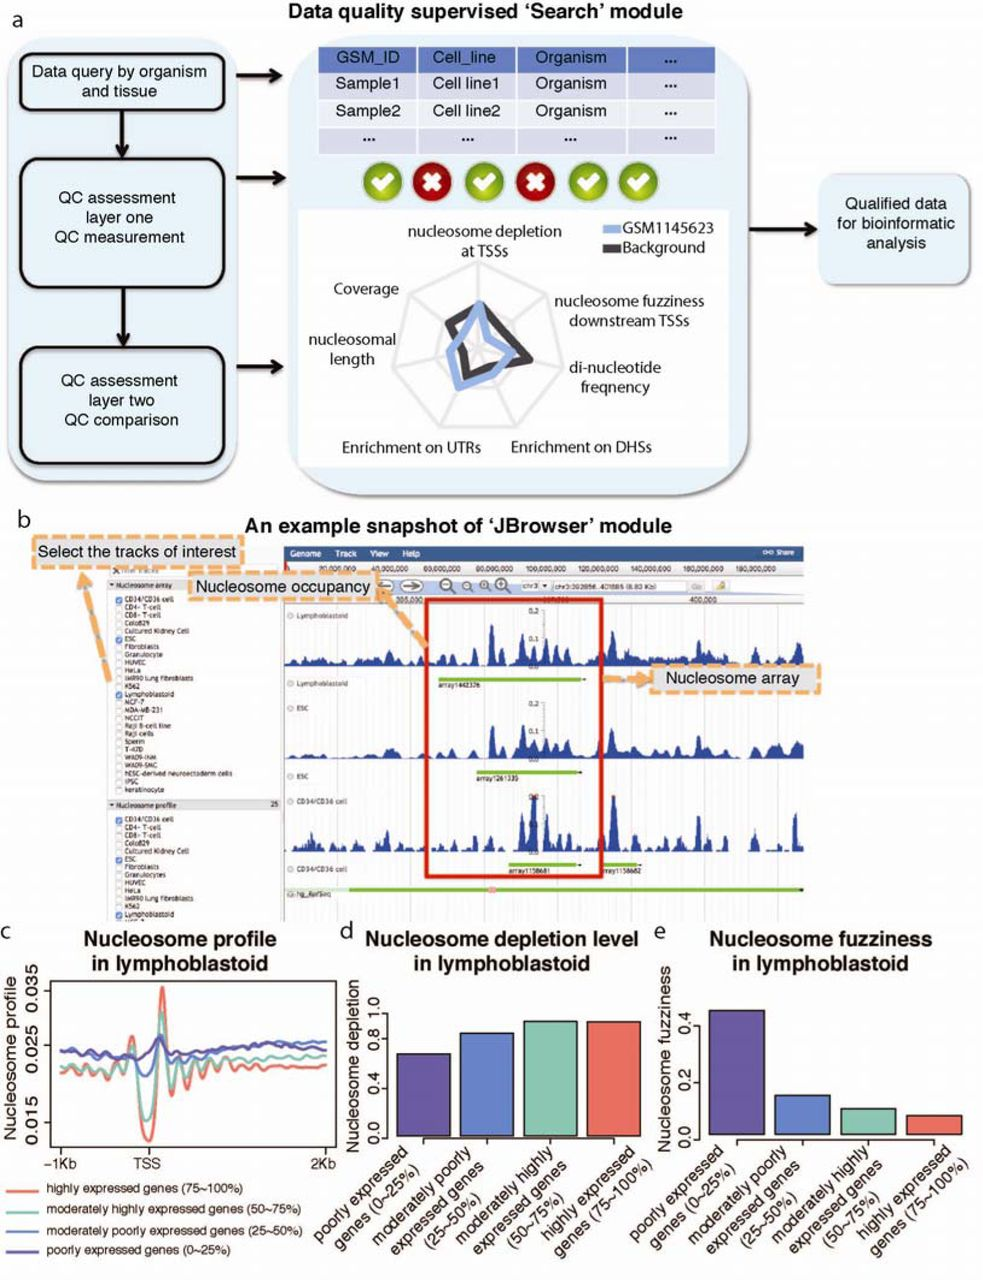 NUCOME: A Comprehensive Database of Nucleosome Organizations in